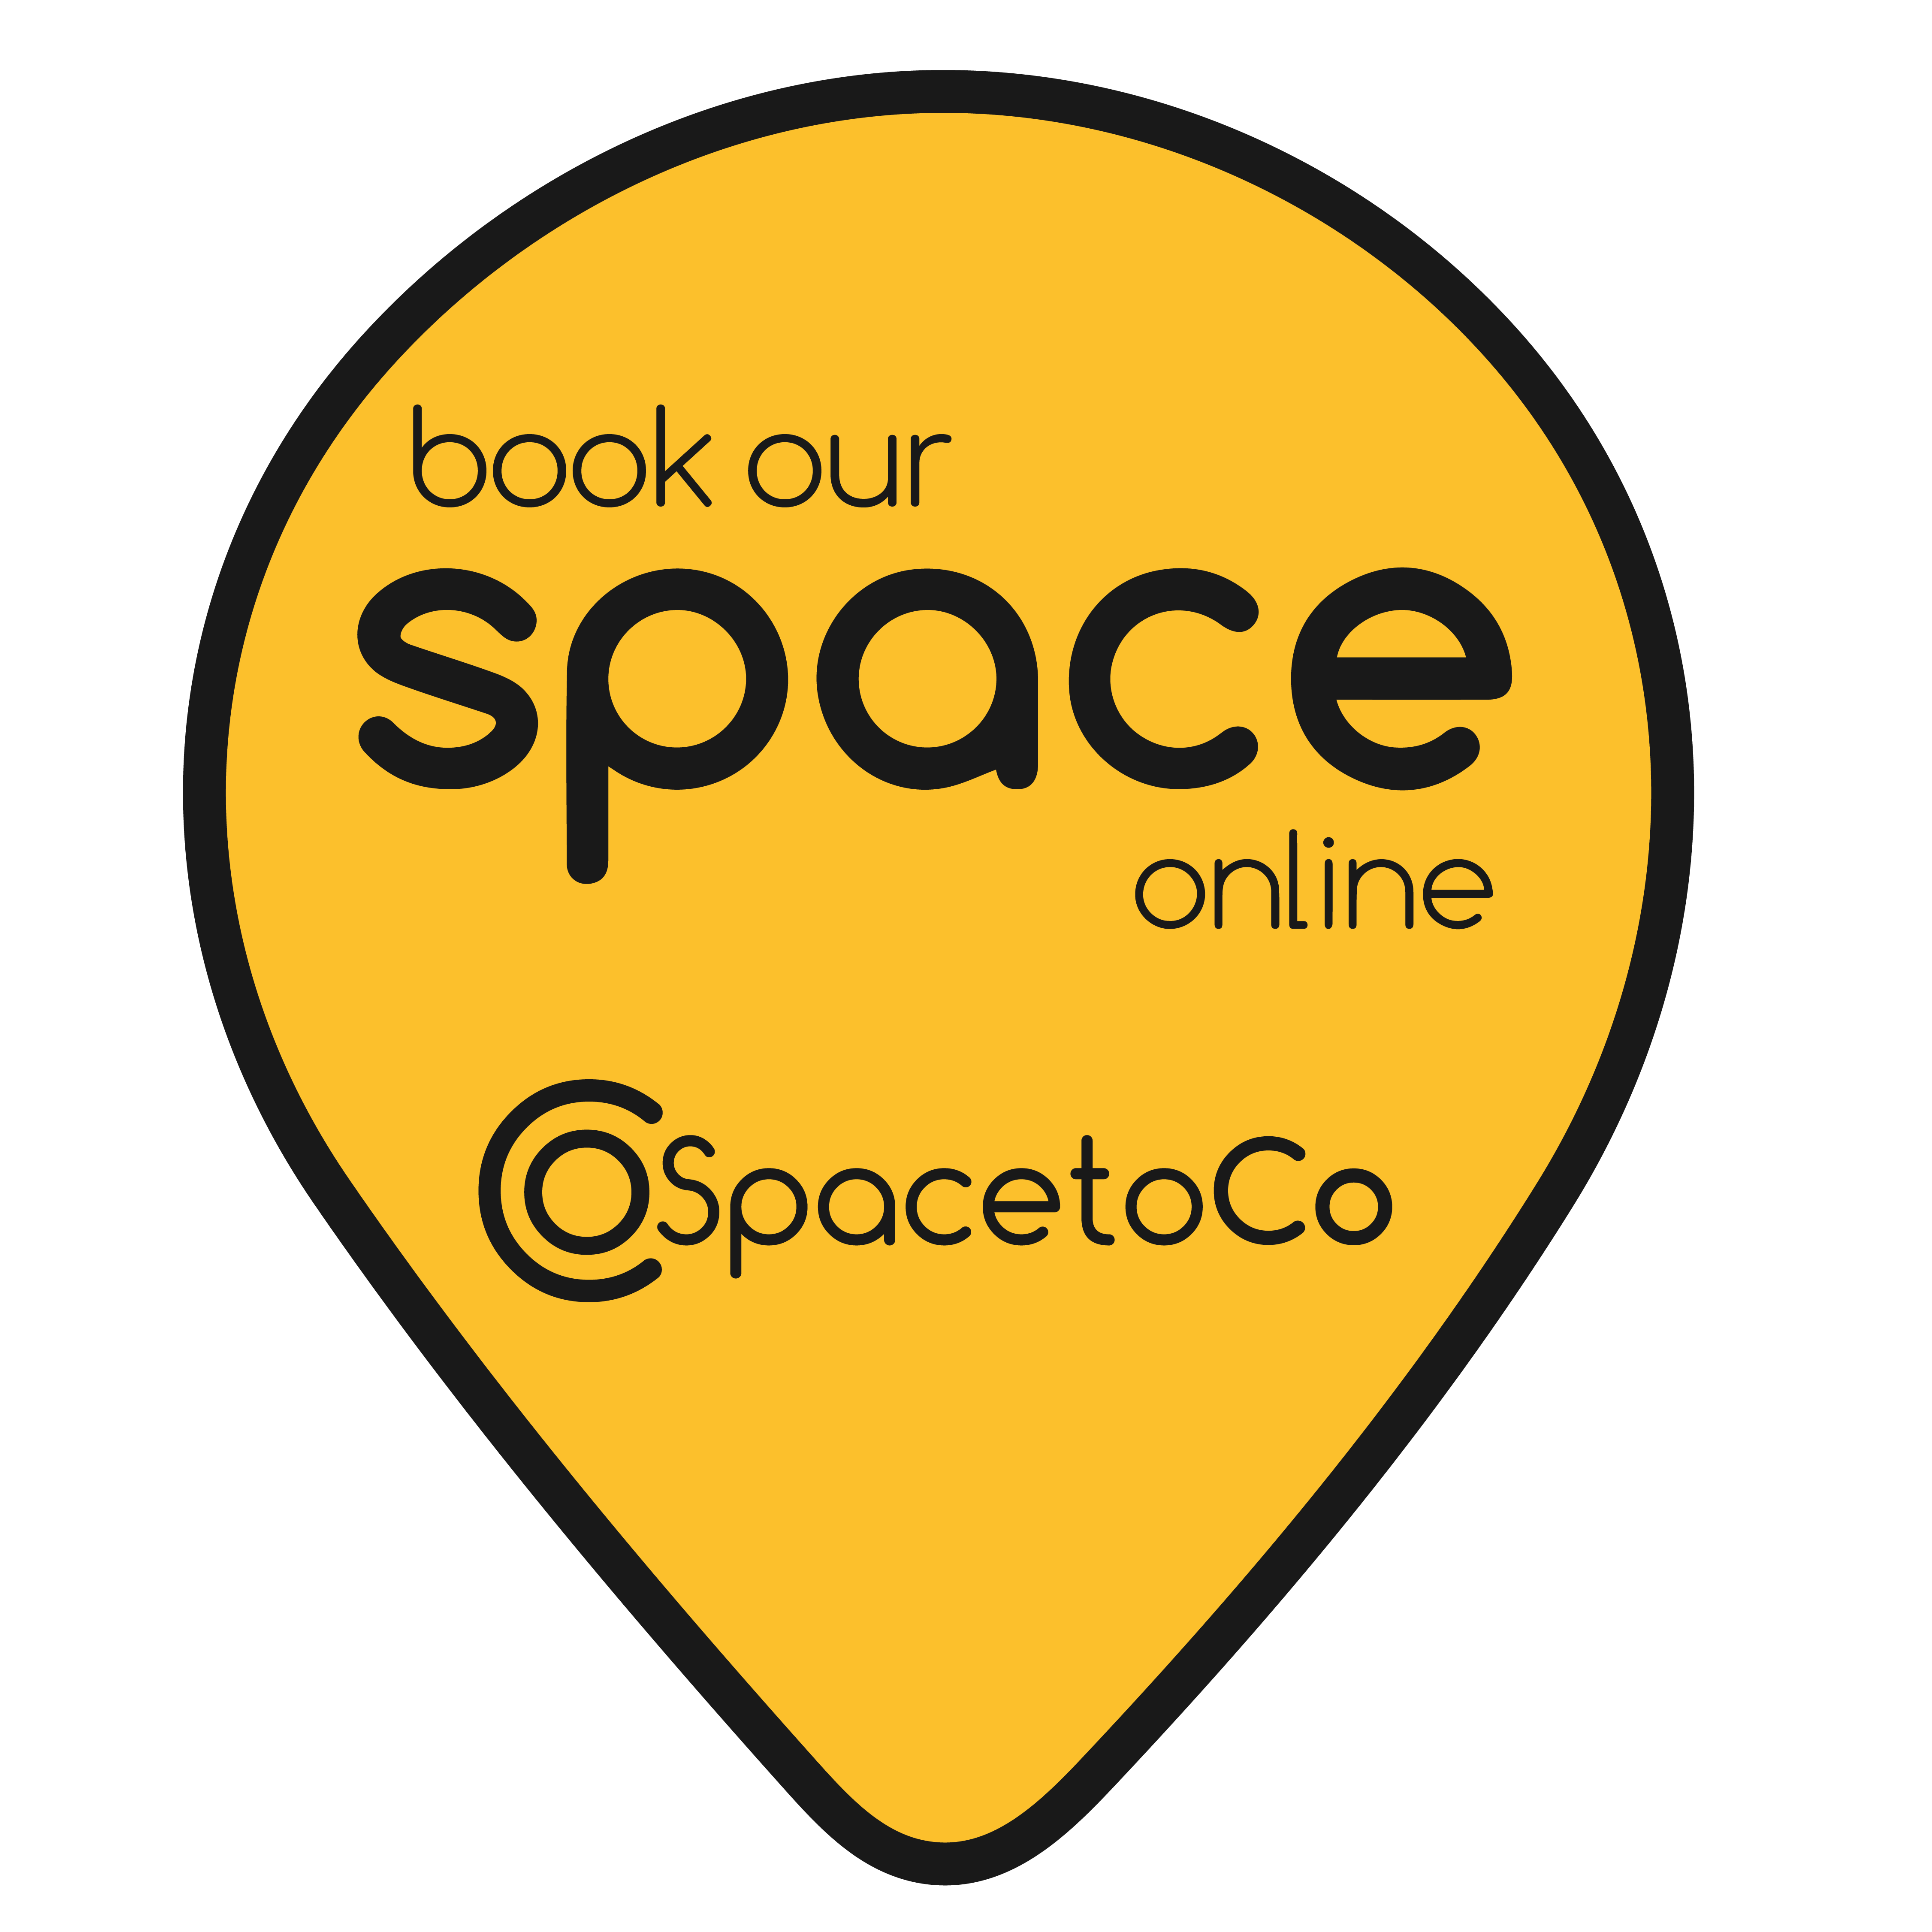 Book this space